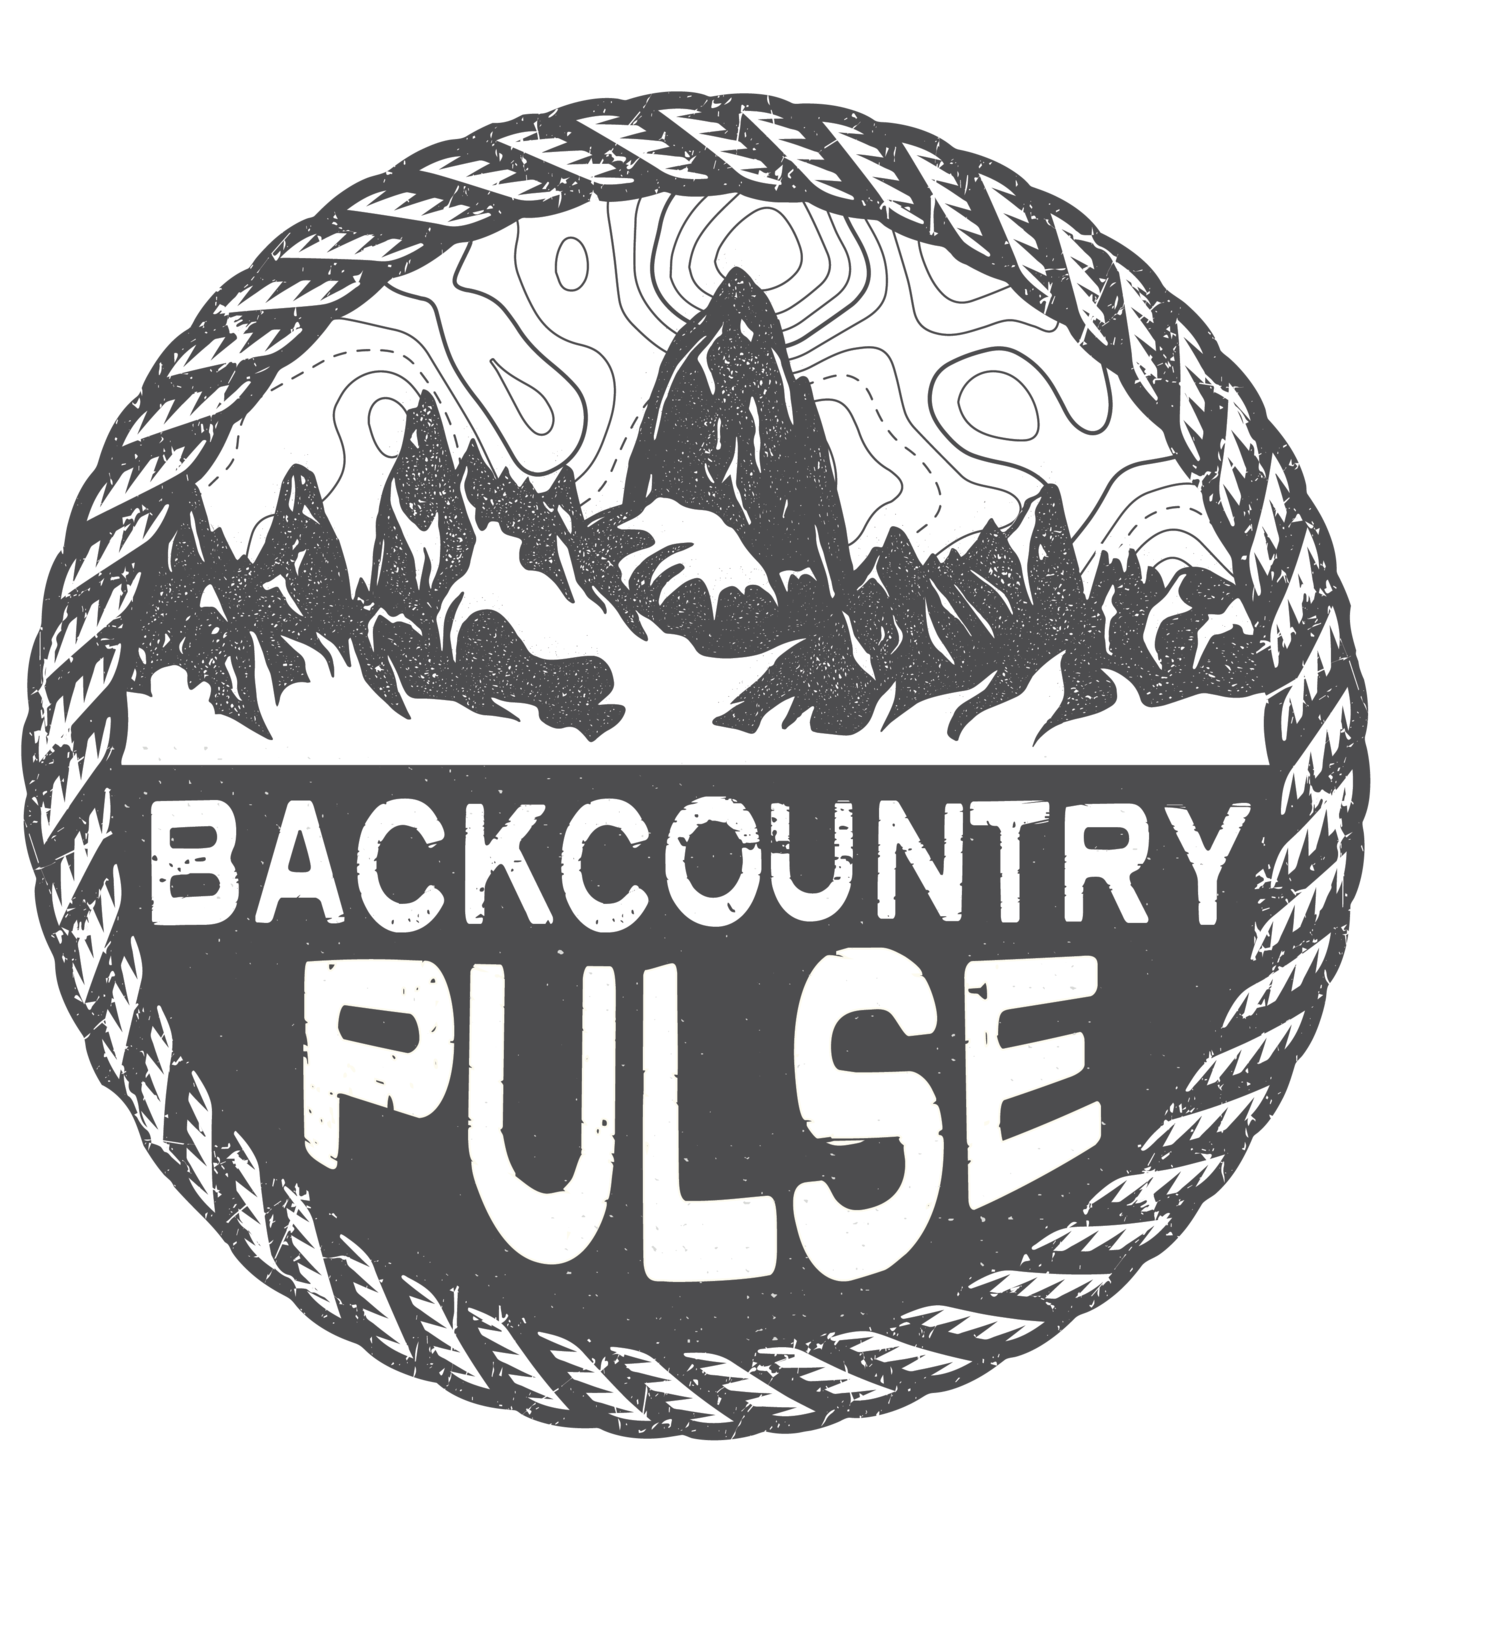 Backcountry Pulse LLC